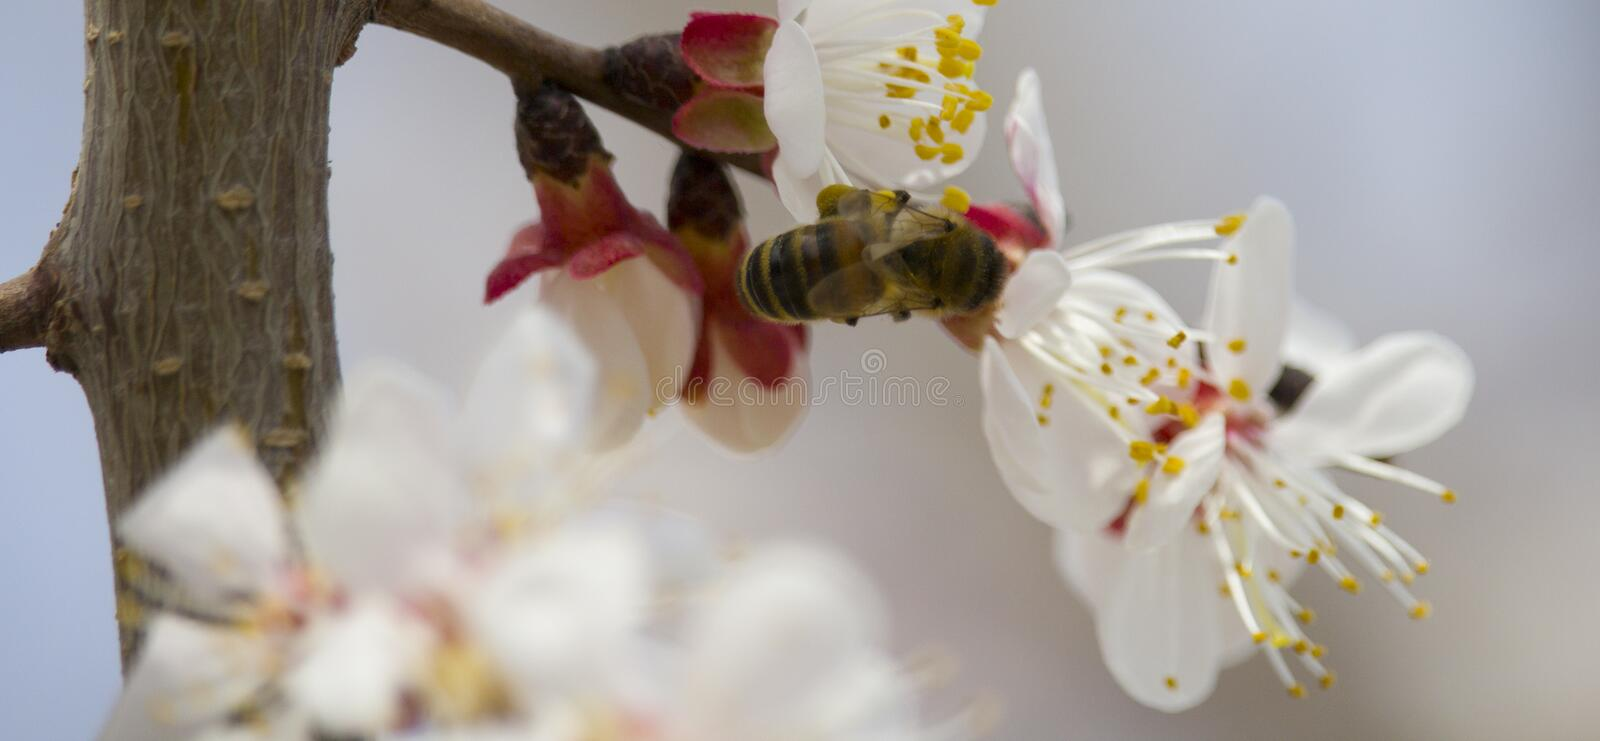 Bee on fruit tree flower with white petals royalty free stock photos